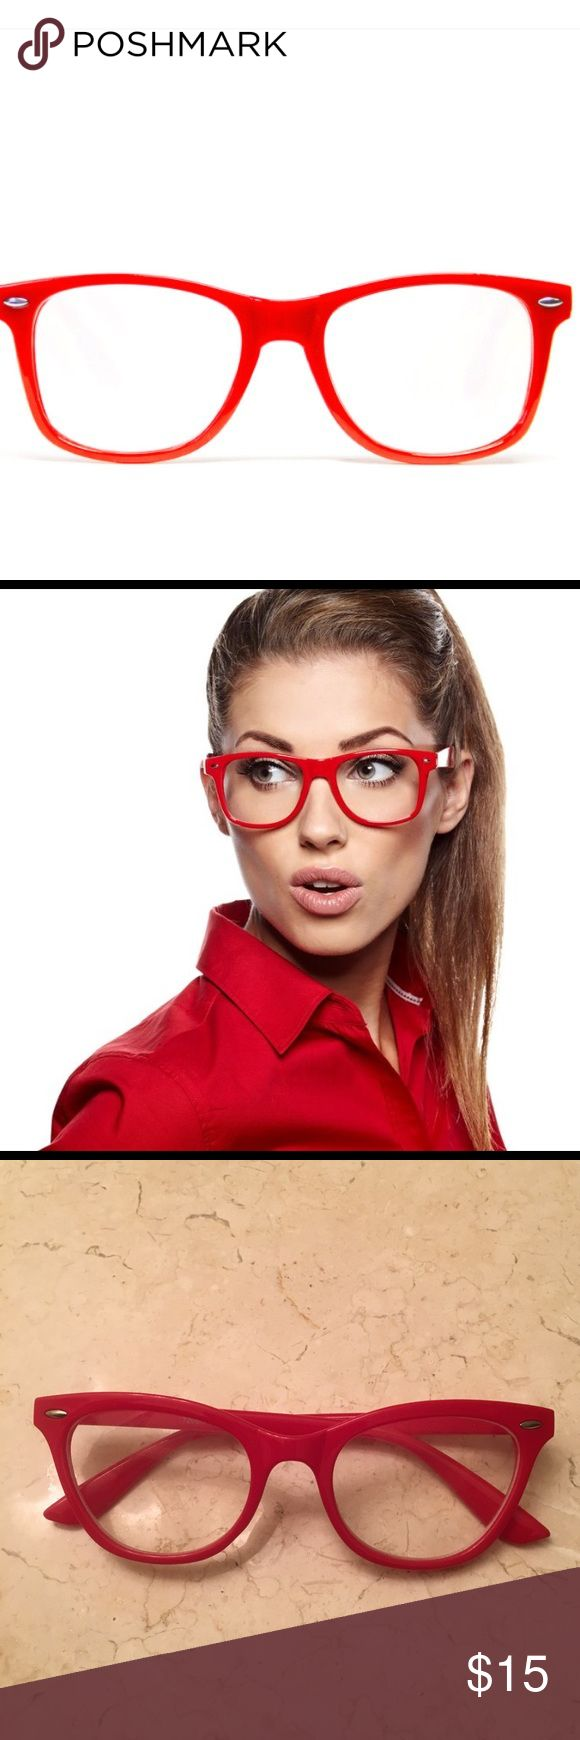 Red eye glasses These glasses are so hot and stylish. Remember Marilyn Monroe had a pair. Says7206C on inside. Fun fun fun. Photo one not actual glasses just to show how they would look on a model. Accessories Glasses